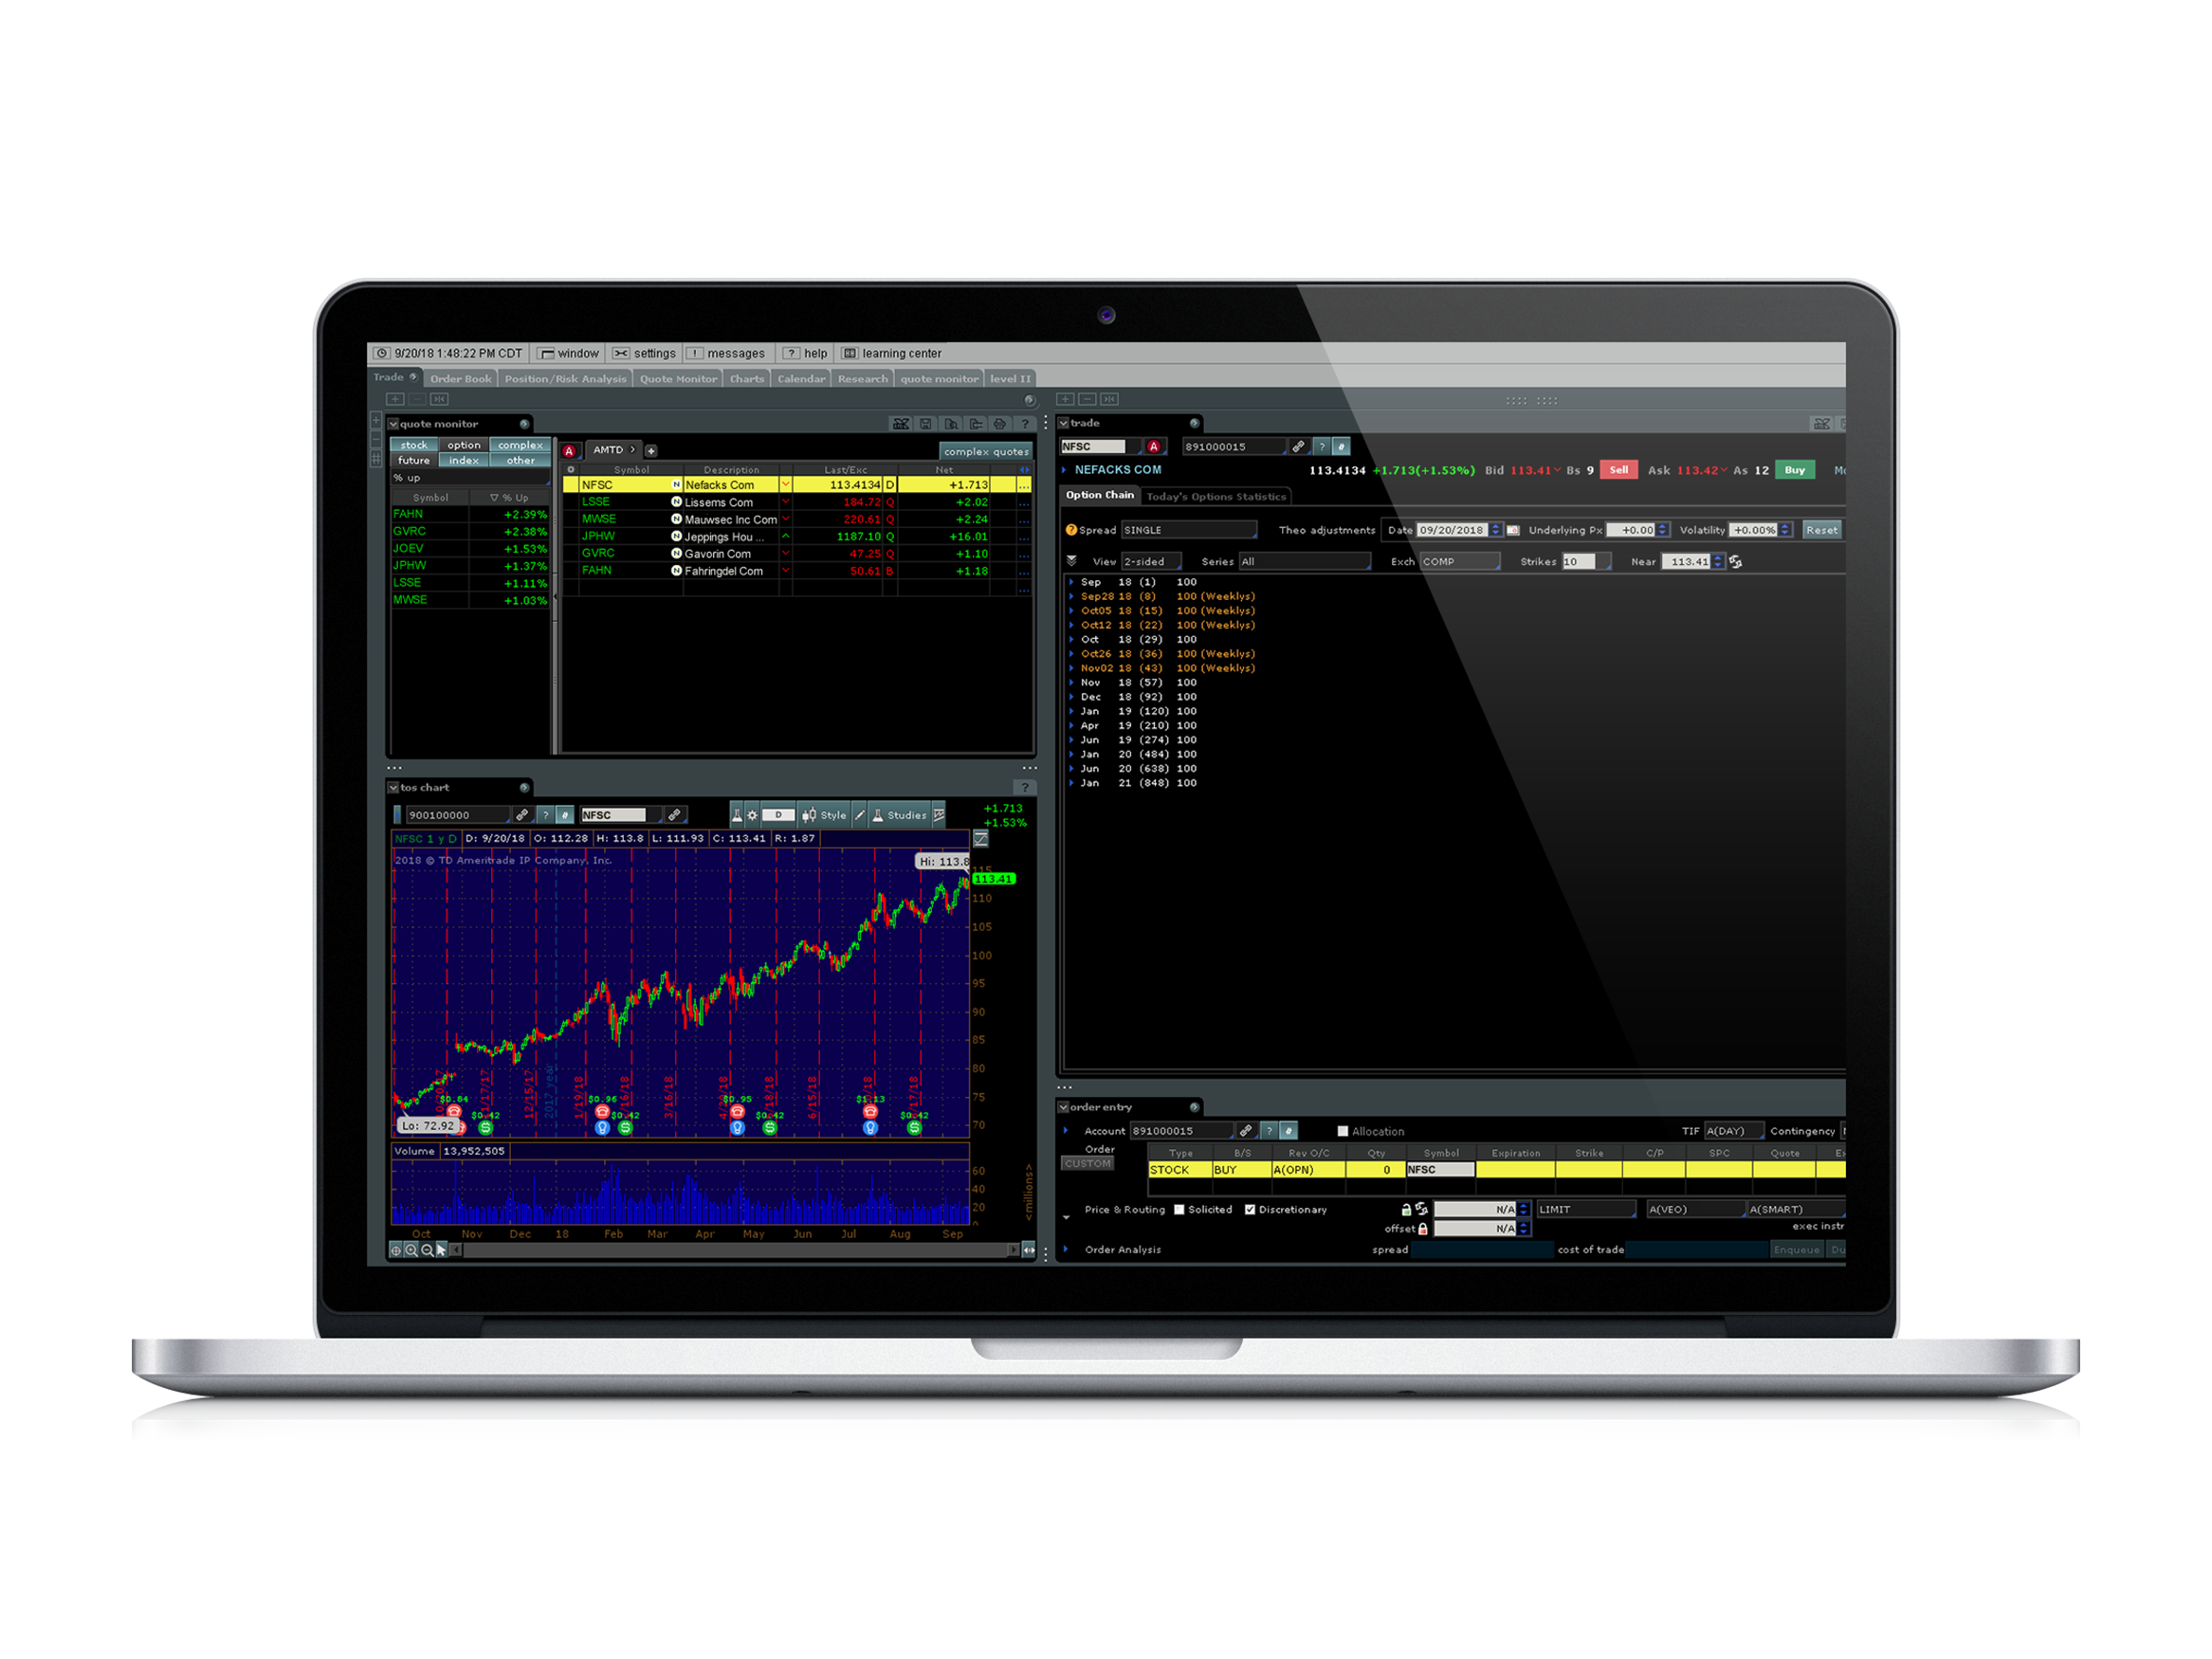 thinkpipes: This advanced trading platform delivers streaming market data, real-time analytics, and robust charting features.